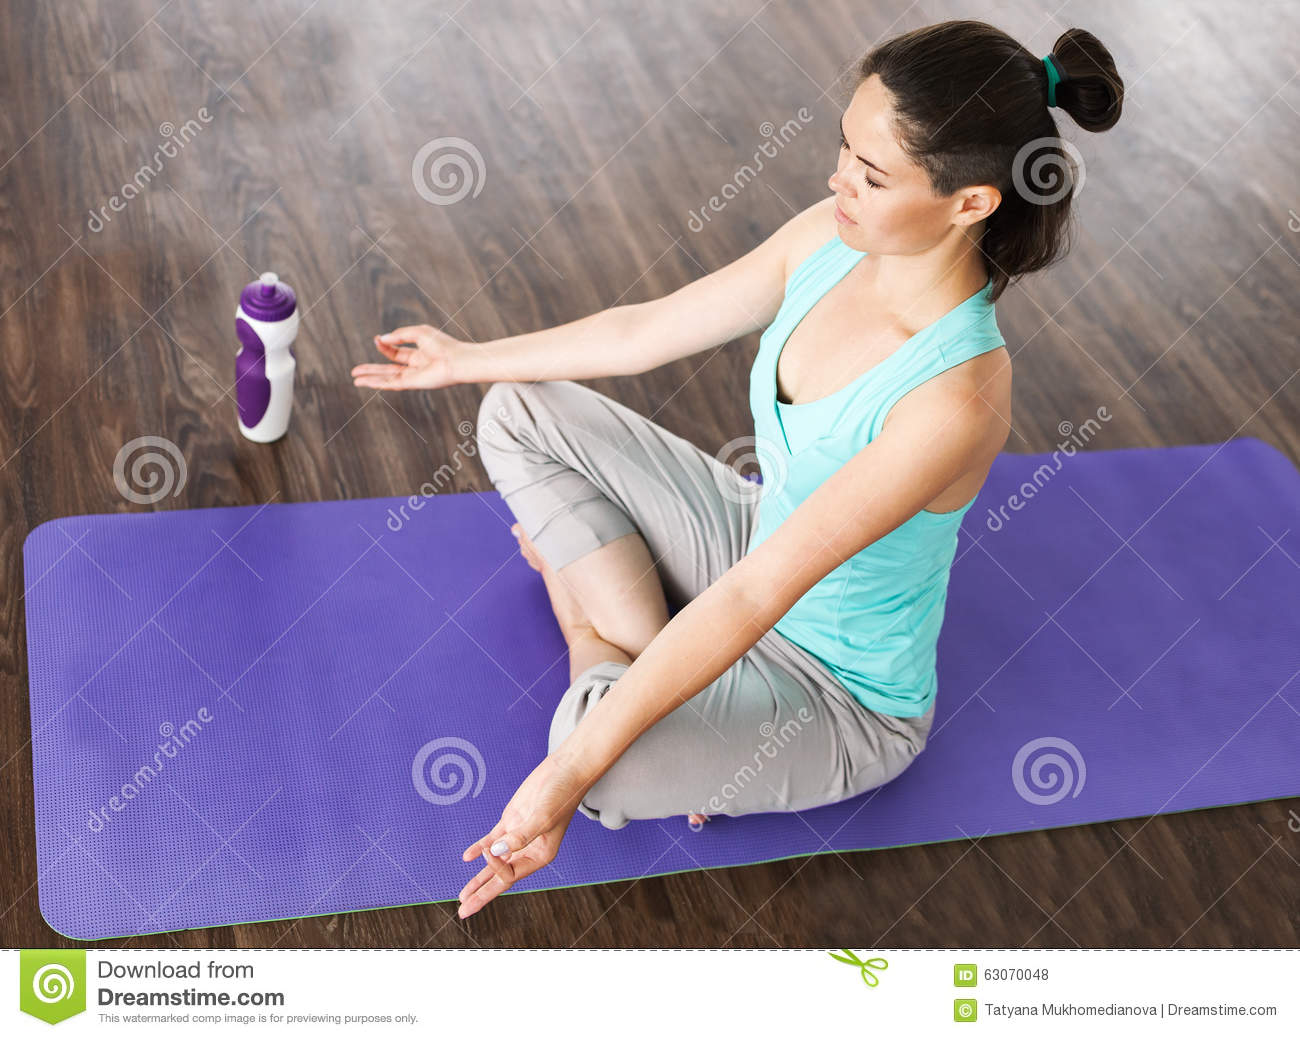 The Girl Meditation In The Lotus Position Yoga Studio